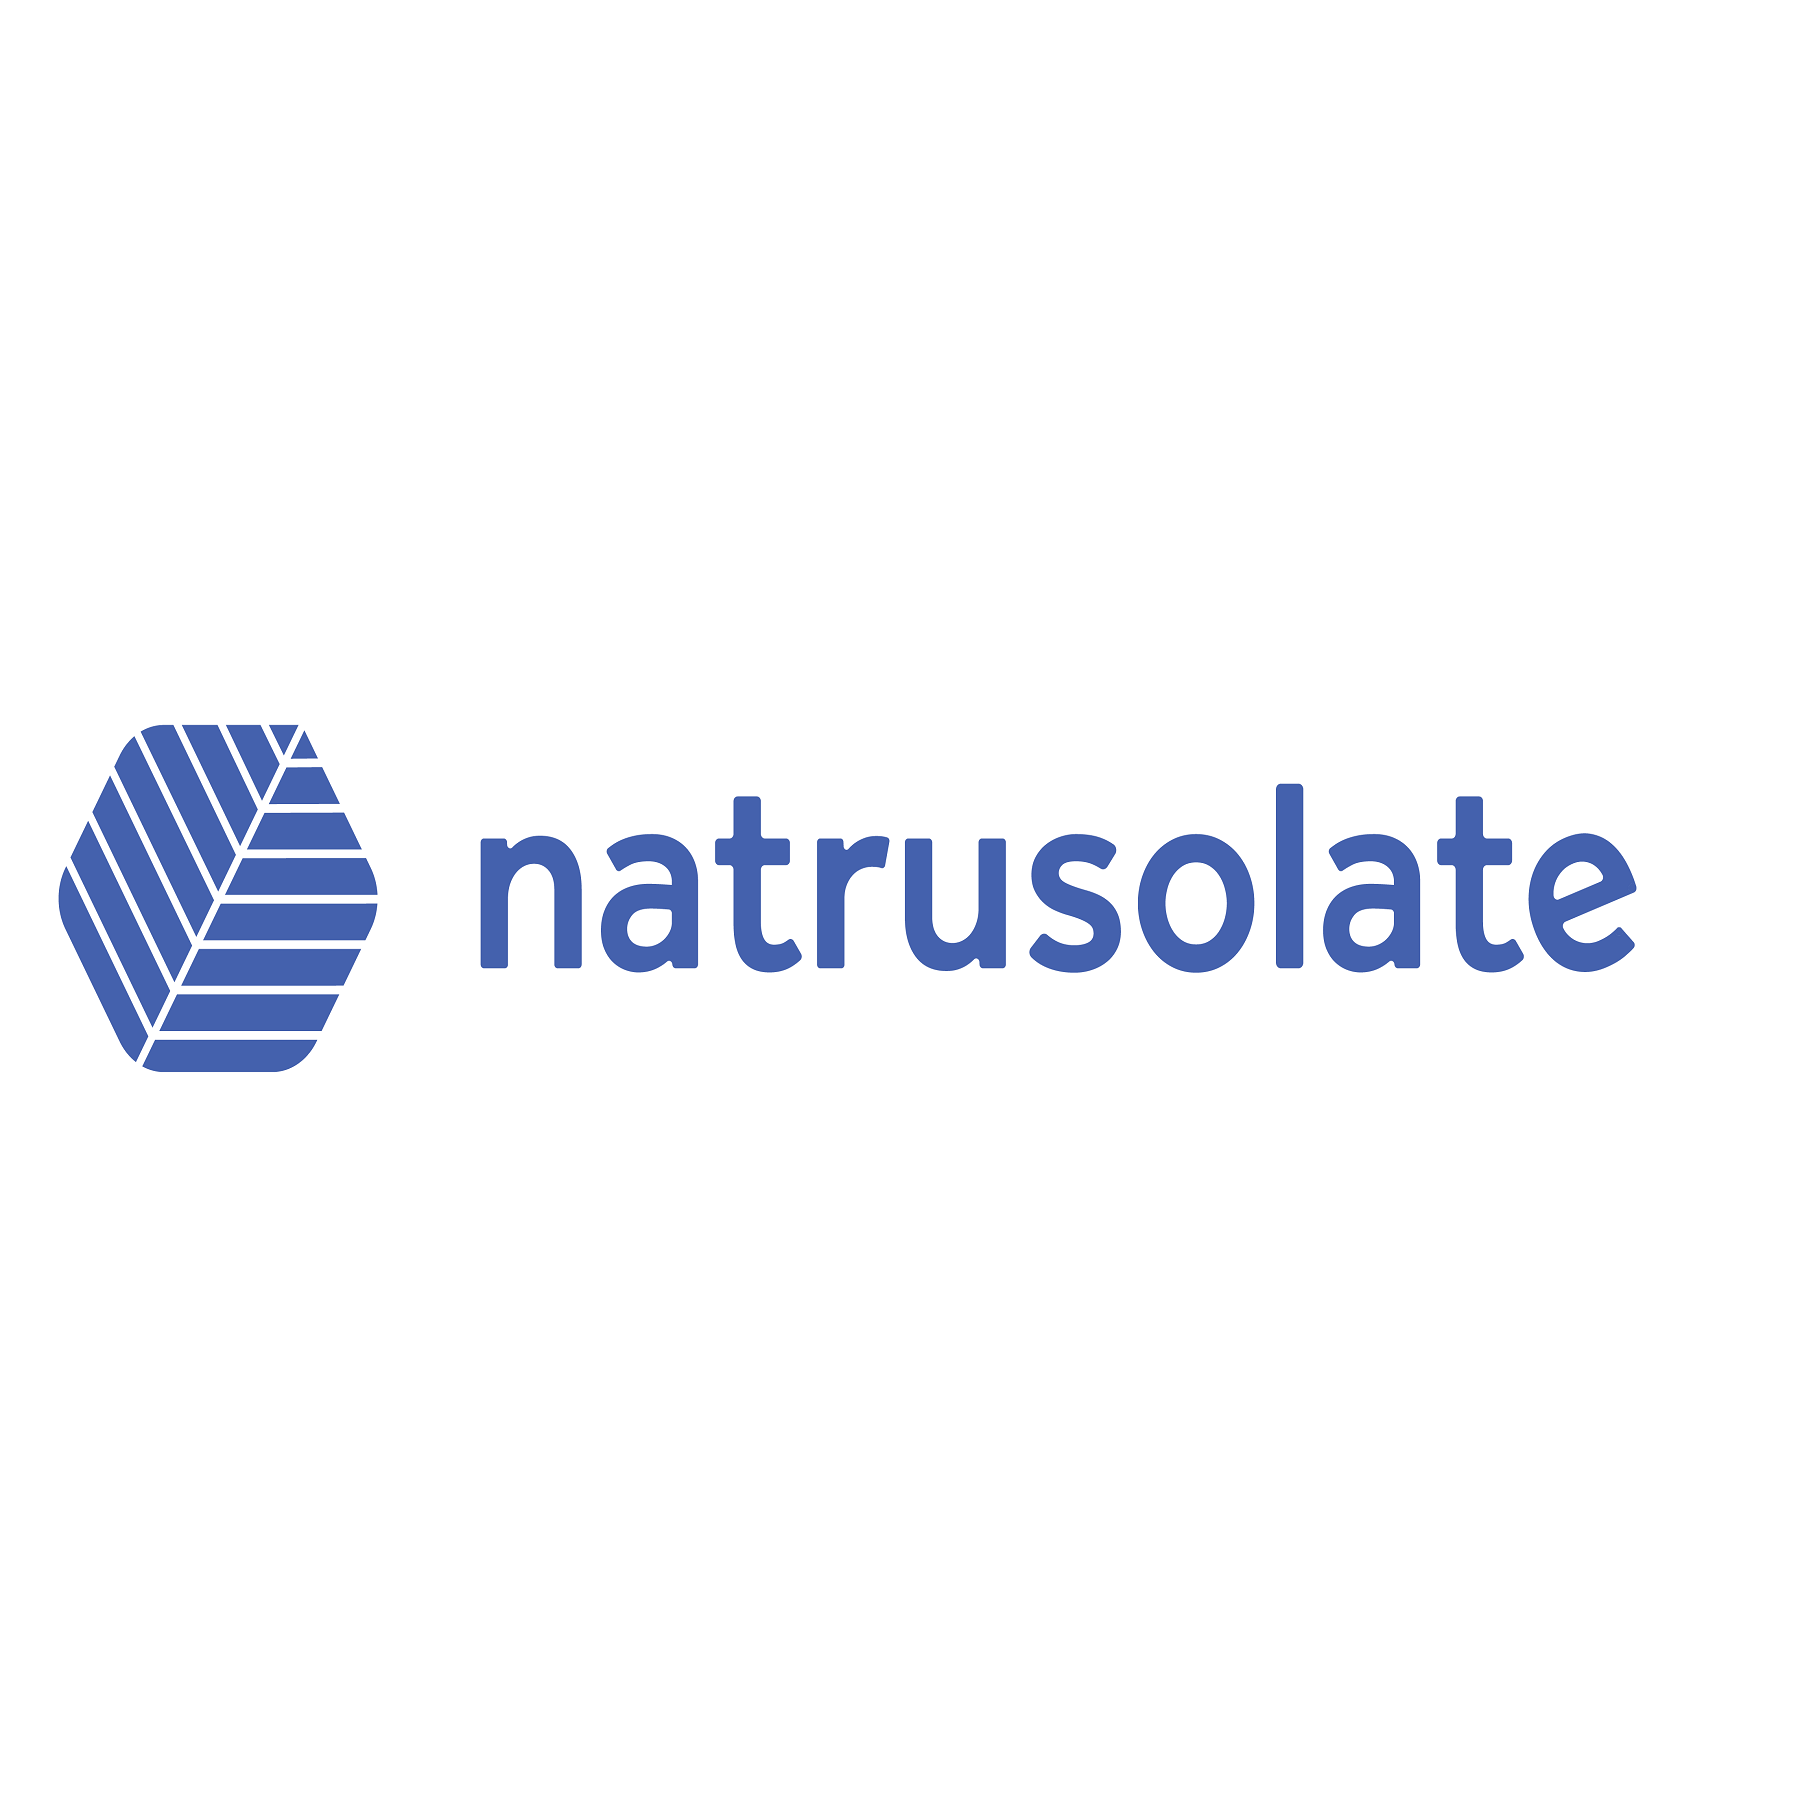 Natrusolate_Company_Logo_original.original.png